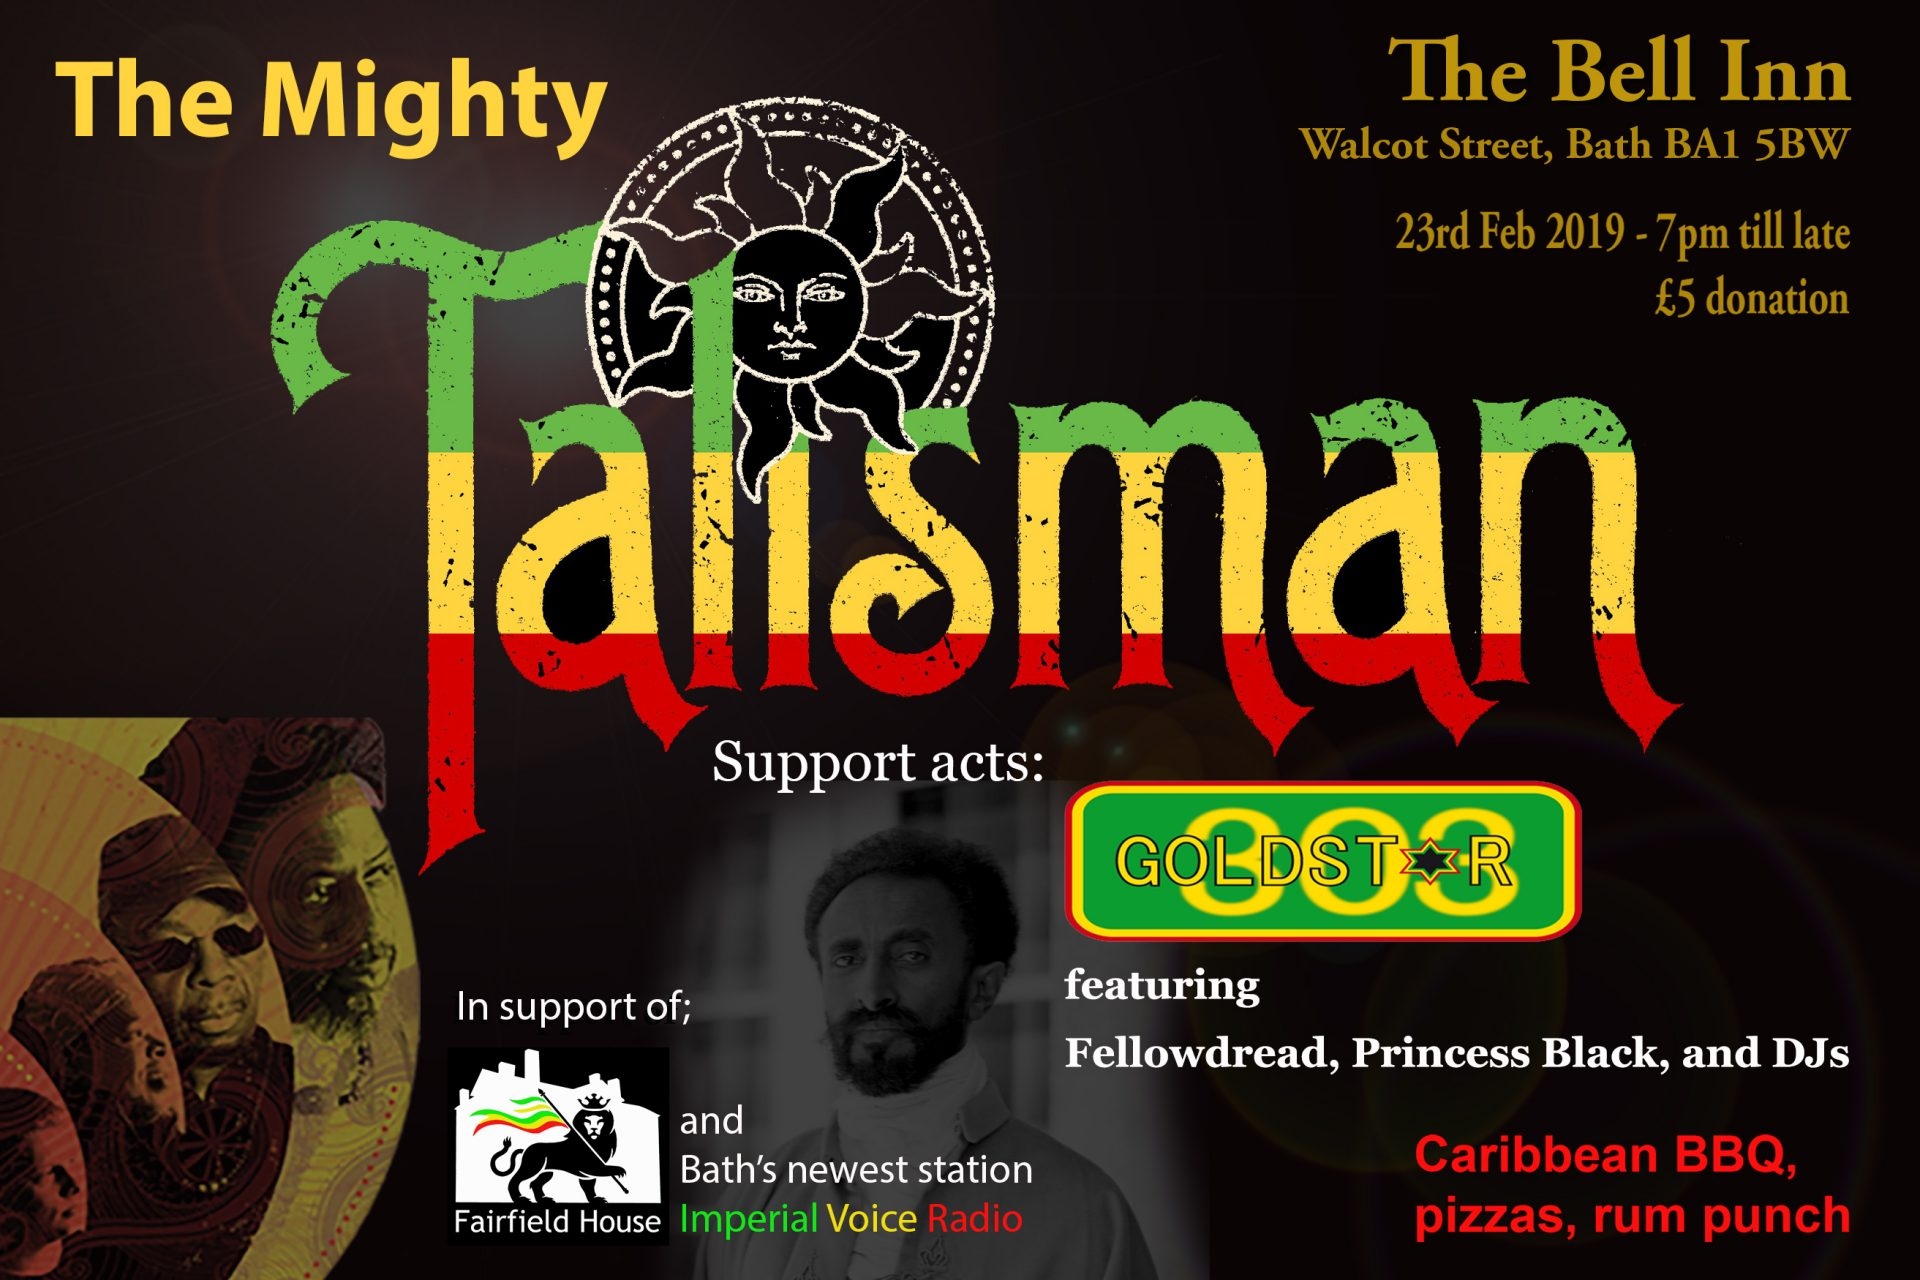 Talisman flyer - update revised 1 Feb 19